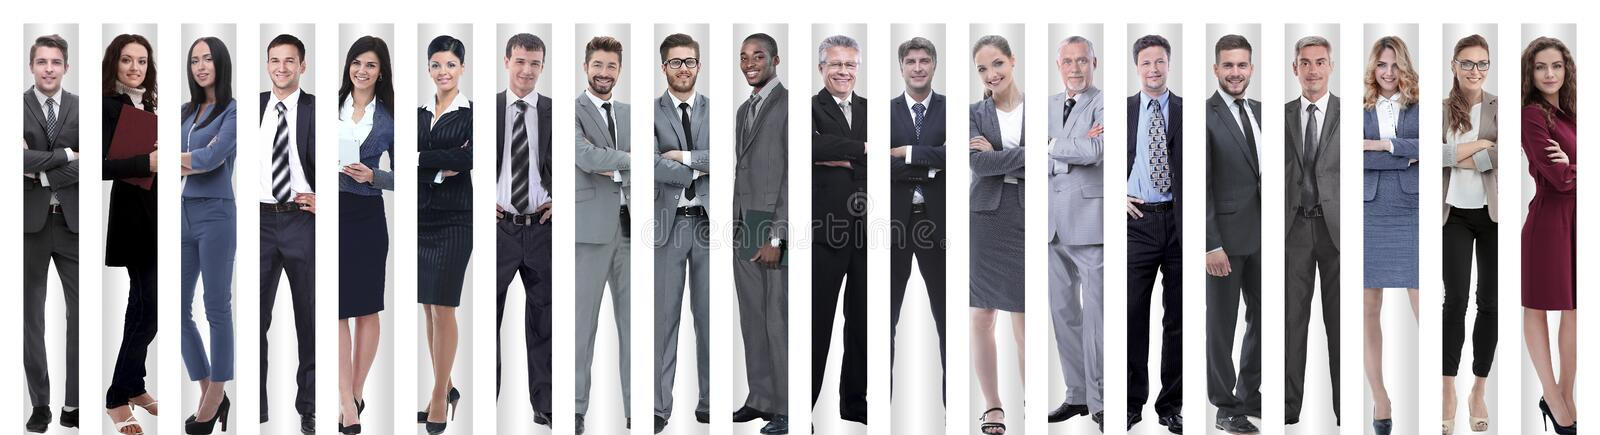 Panoramic collage of groups of successful employees. stock images